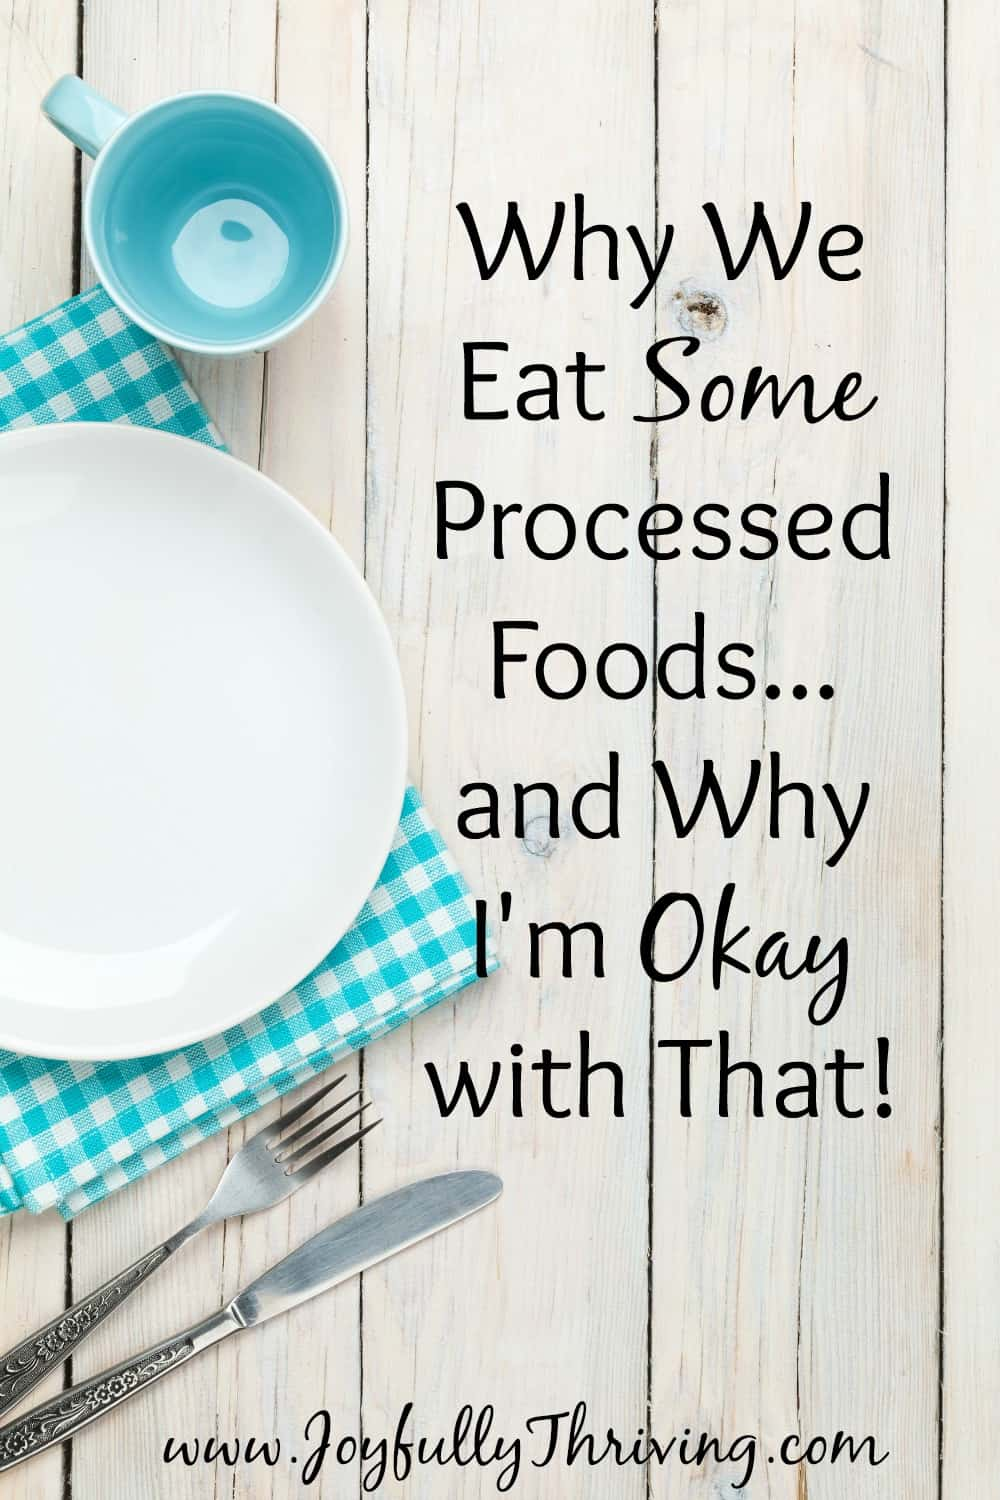 Why We Eat Some Processed Foods & Why I'm Okay with That - I know some moms cook everything from scratch but as much as I love to cook, this is real life. Here's our food approach.